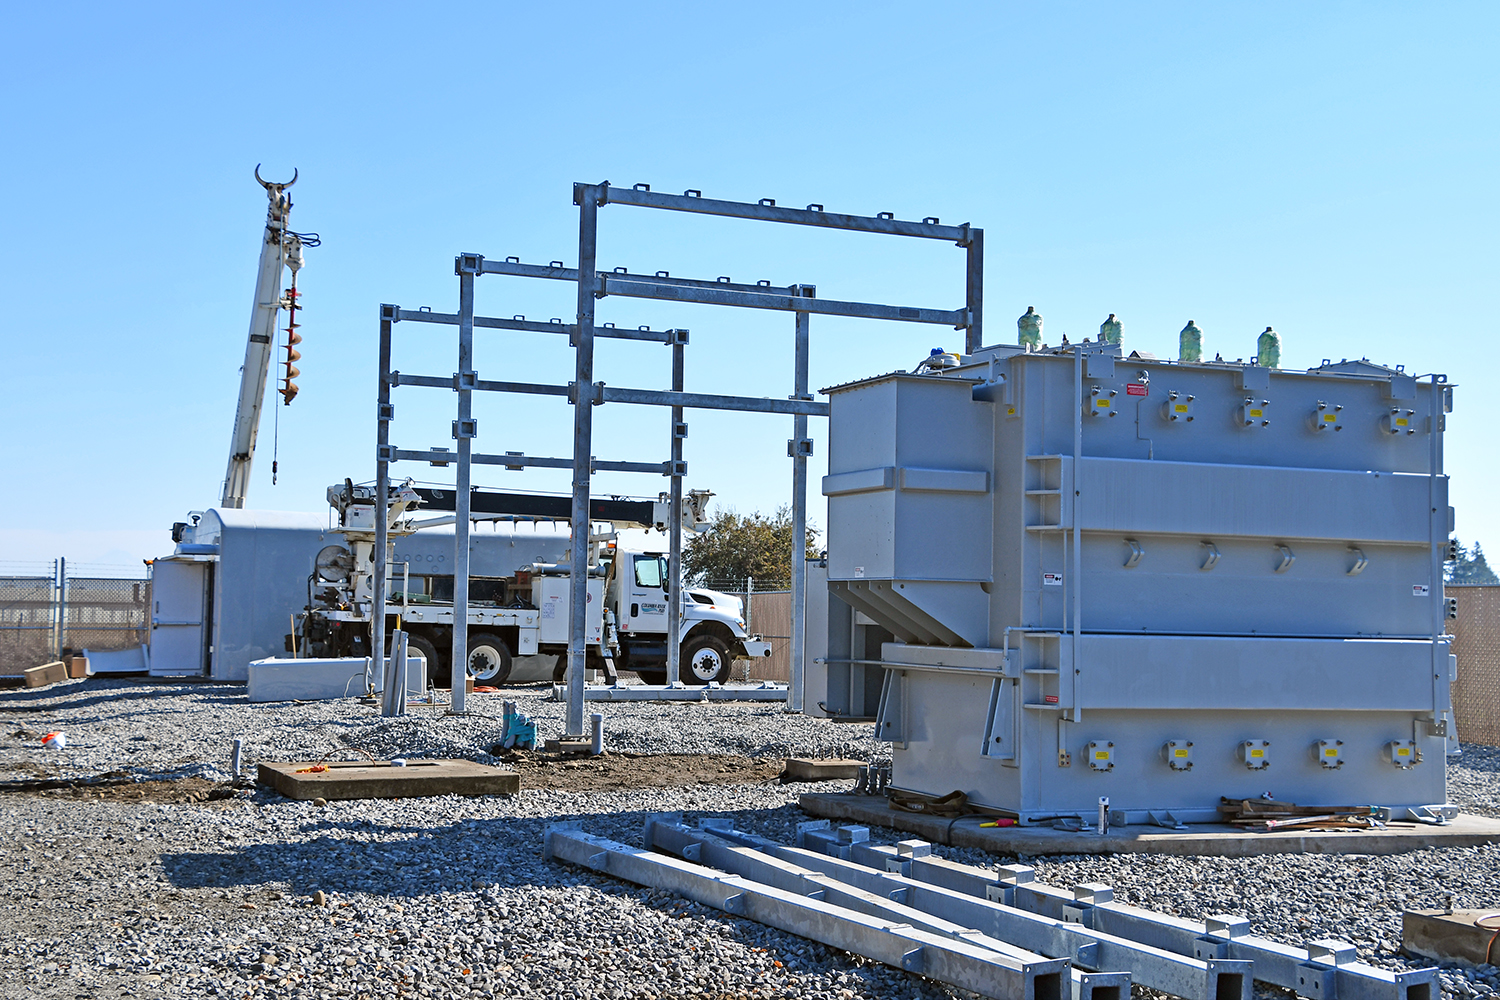 The new Betsy Johnson Substation is under construction.